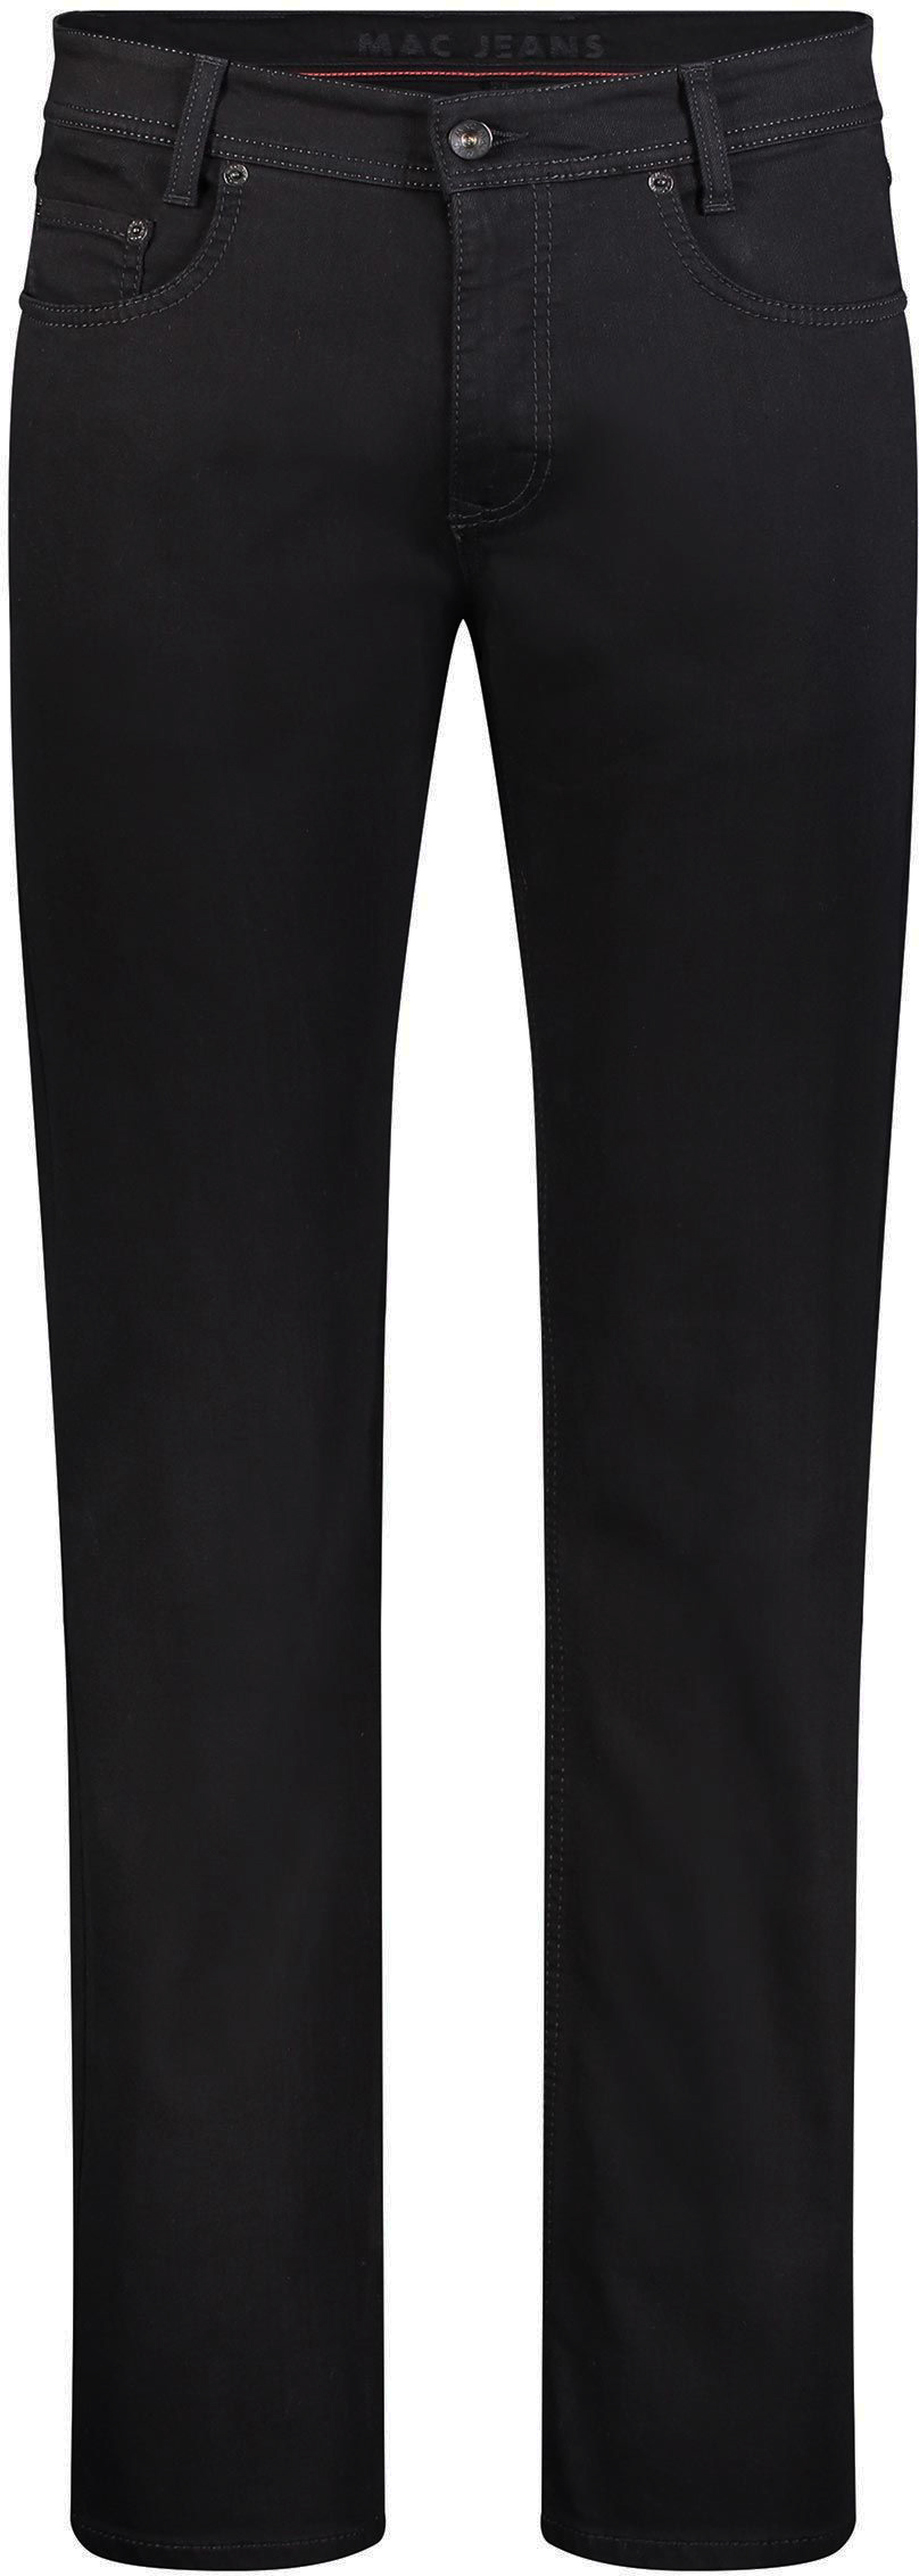 Mac Broek Arne Stretch Black H900